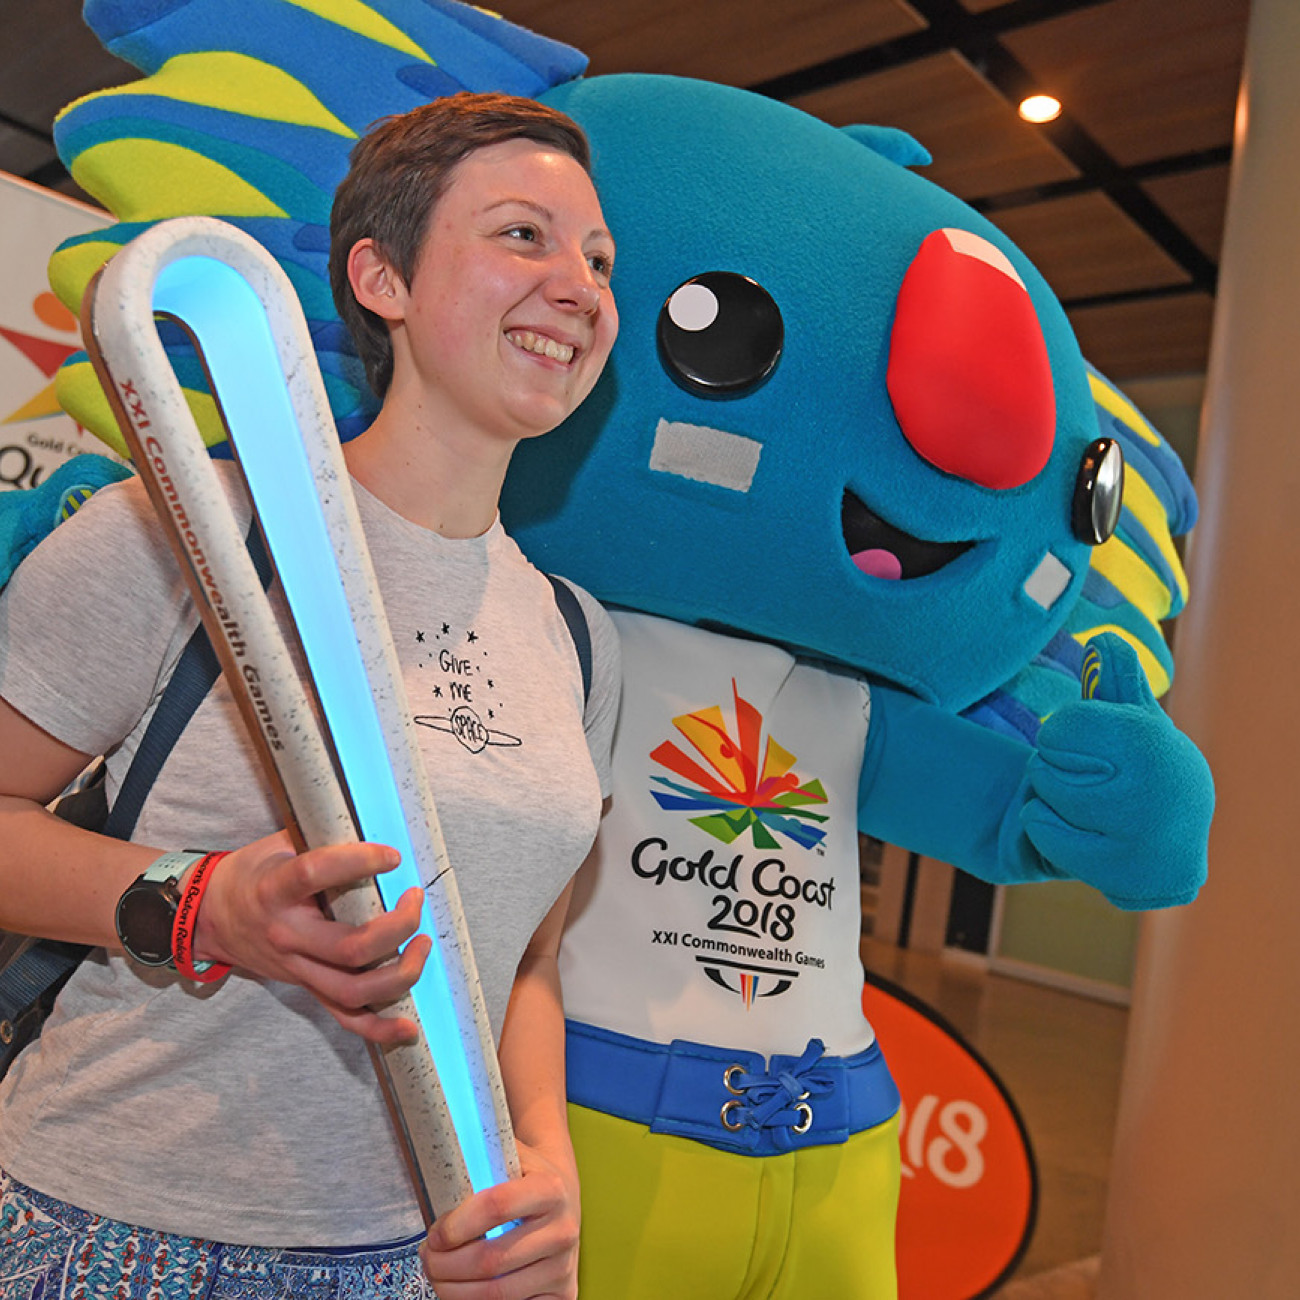 A visitor to the MCG poses with the Queen's Baton and Borobi